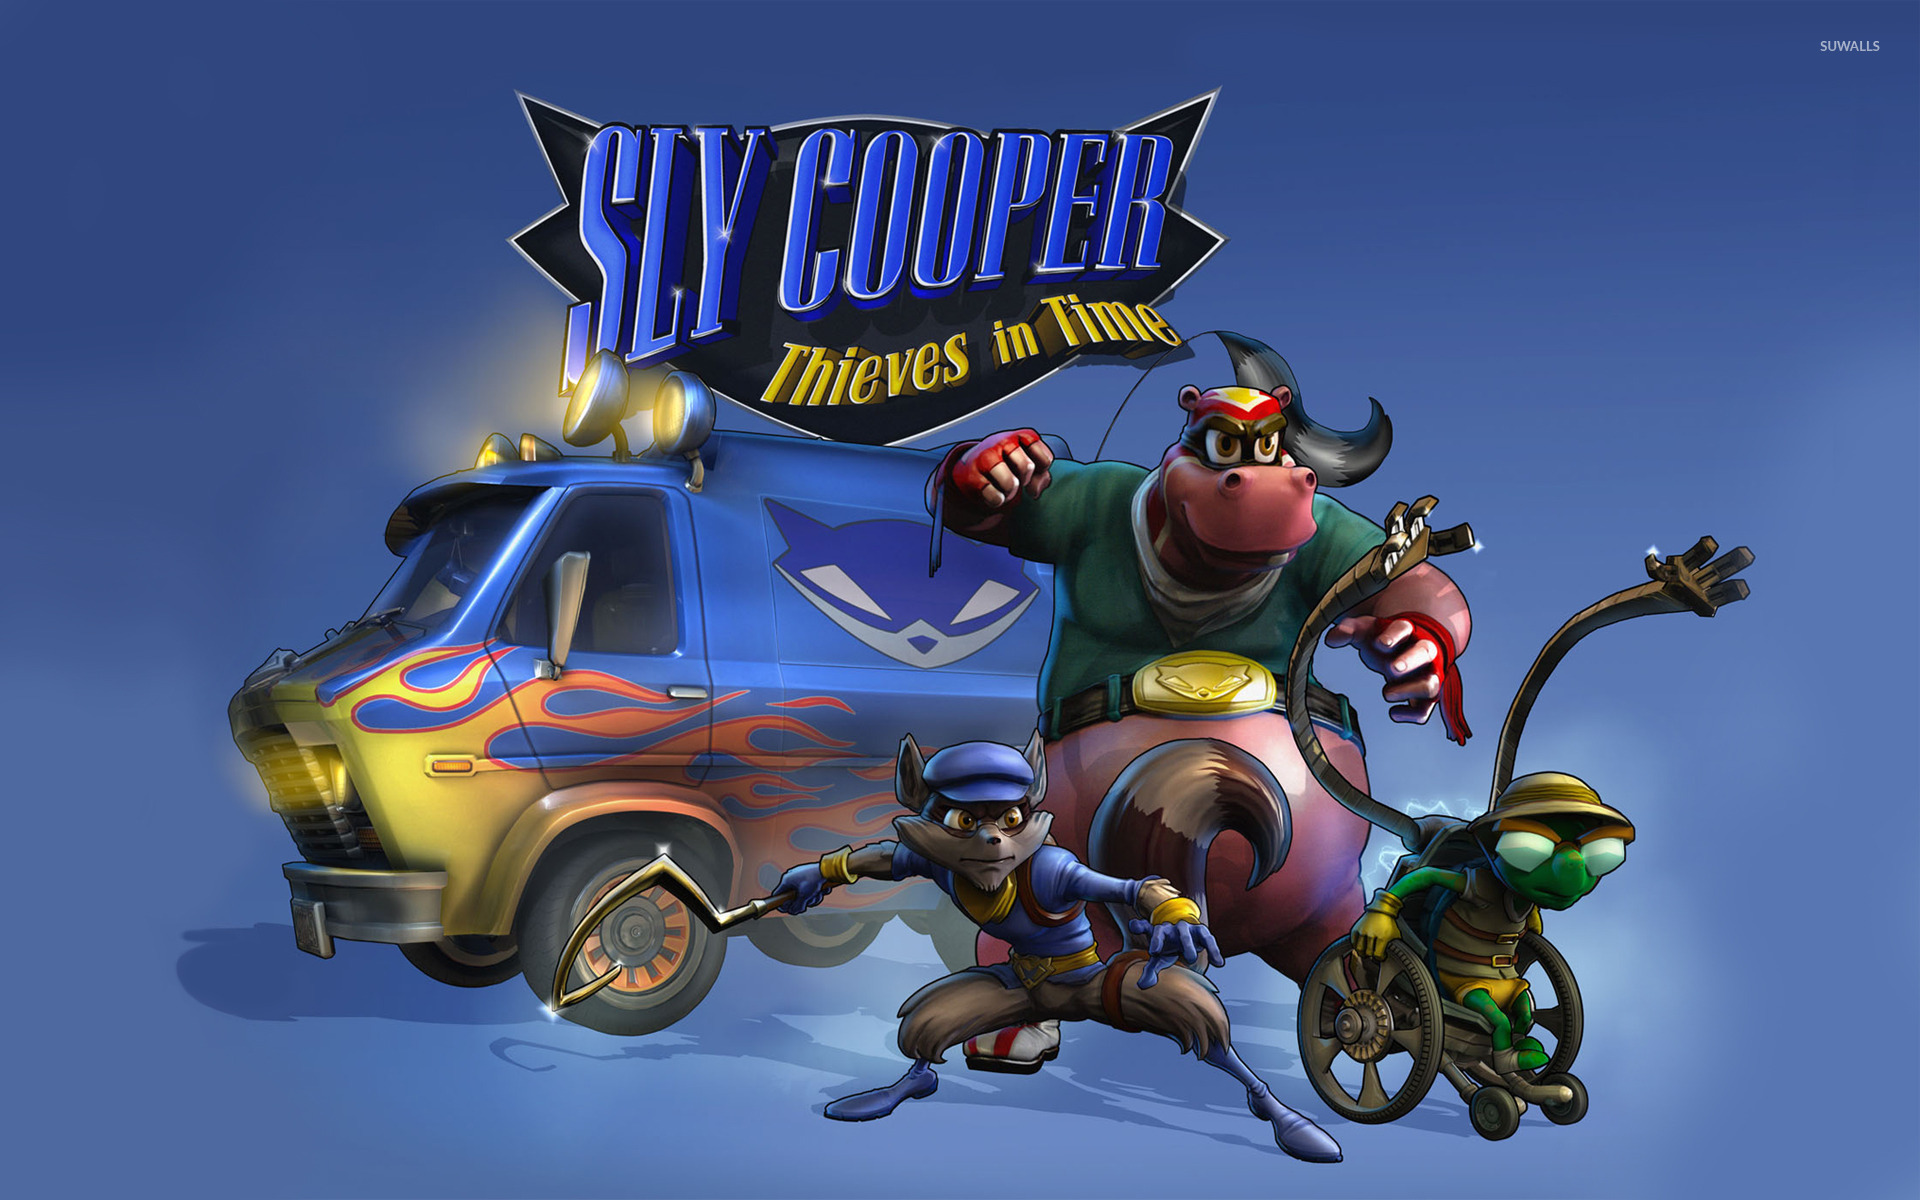 Sly Cooper Thieves in Time wallpaper   Game wallpapers   17526 1280x800